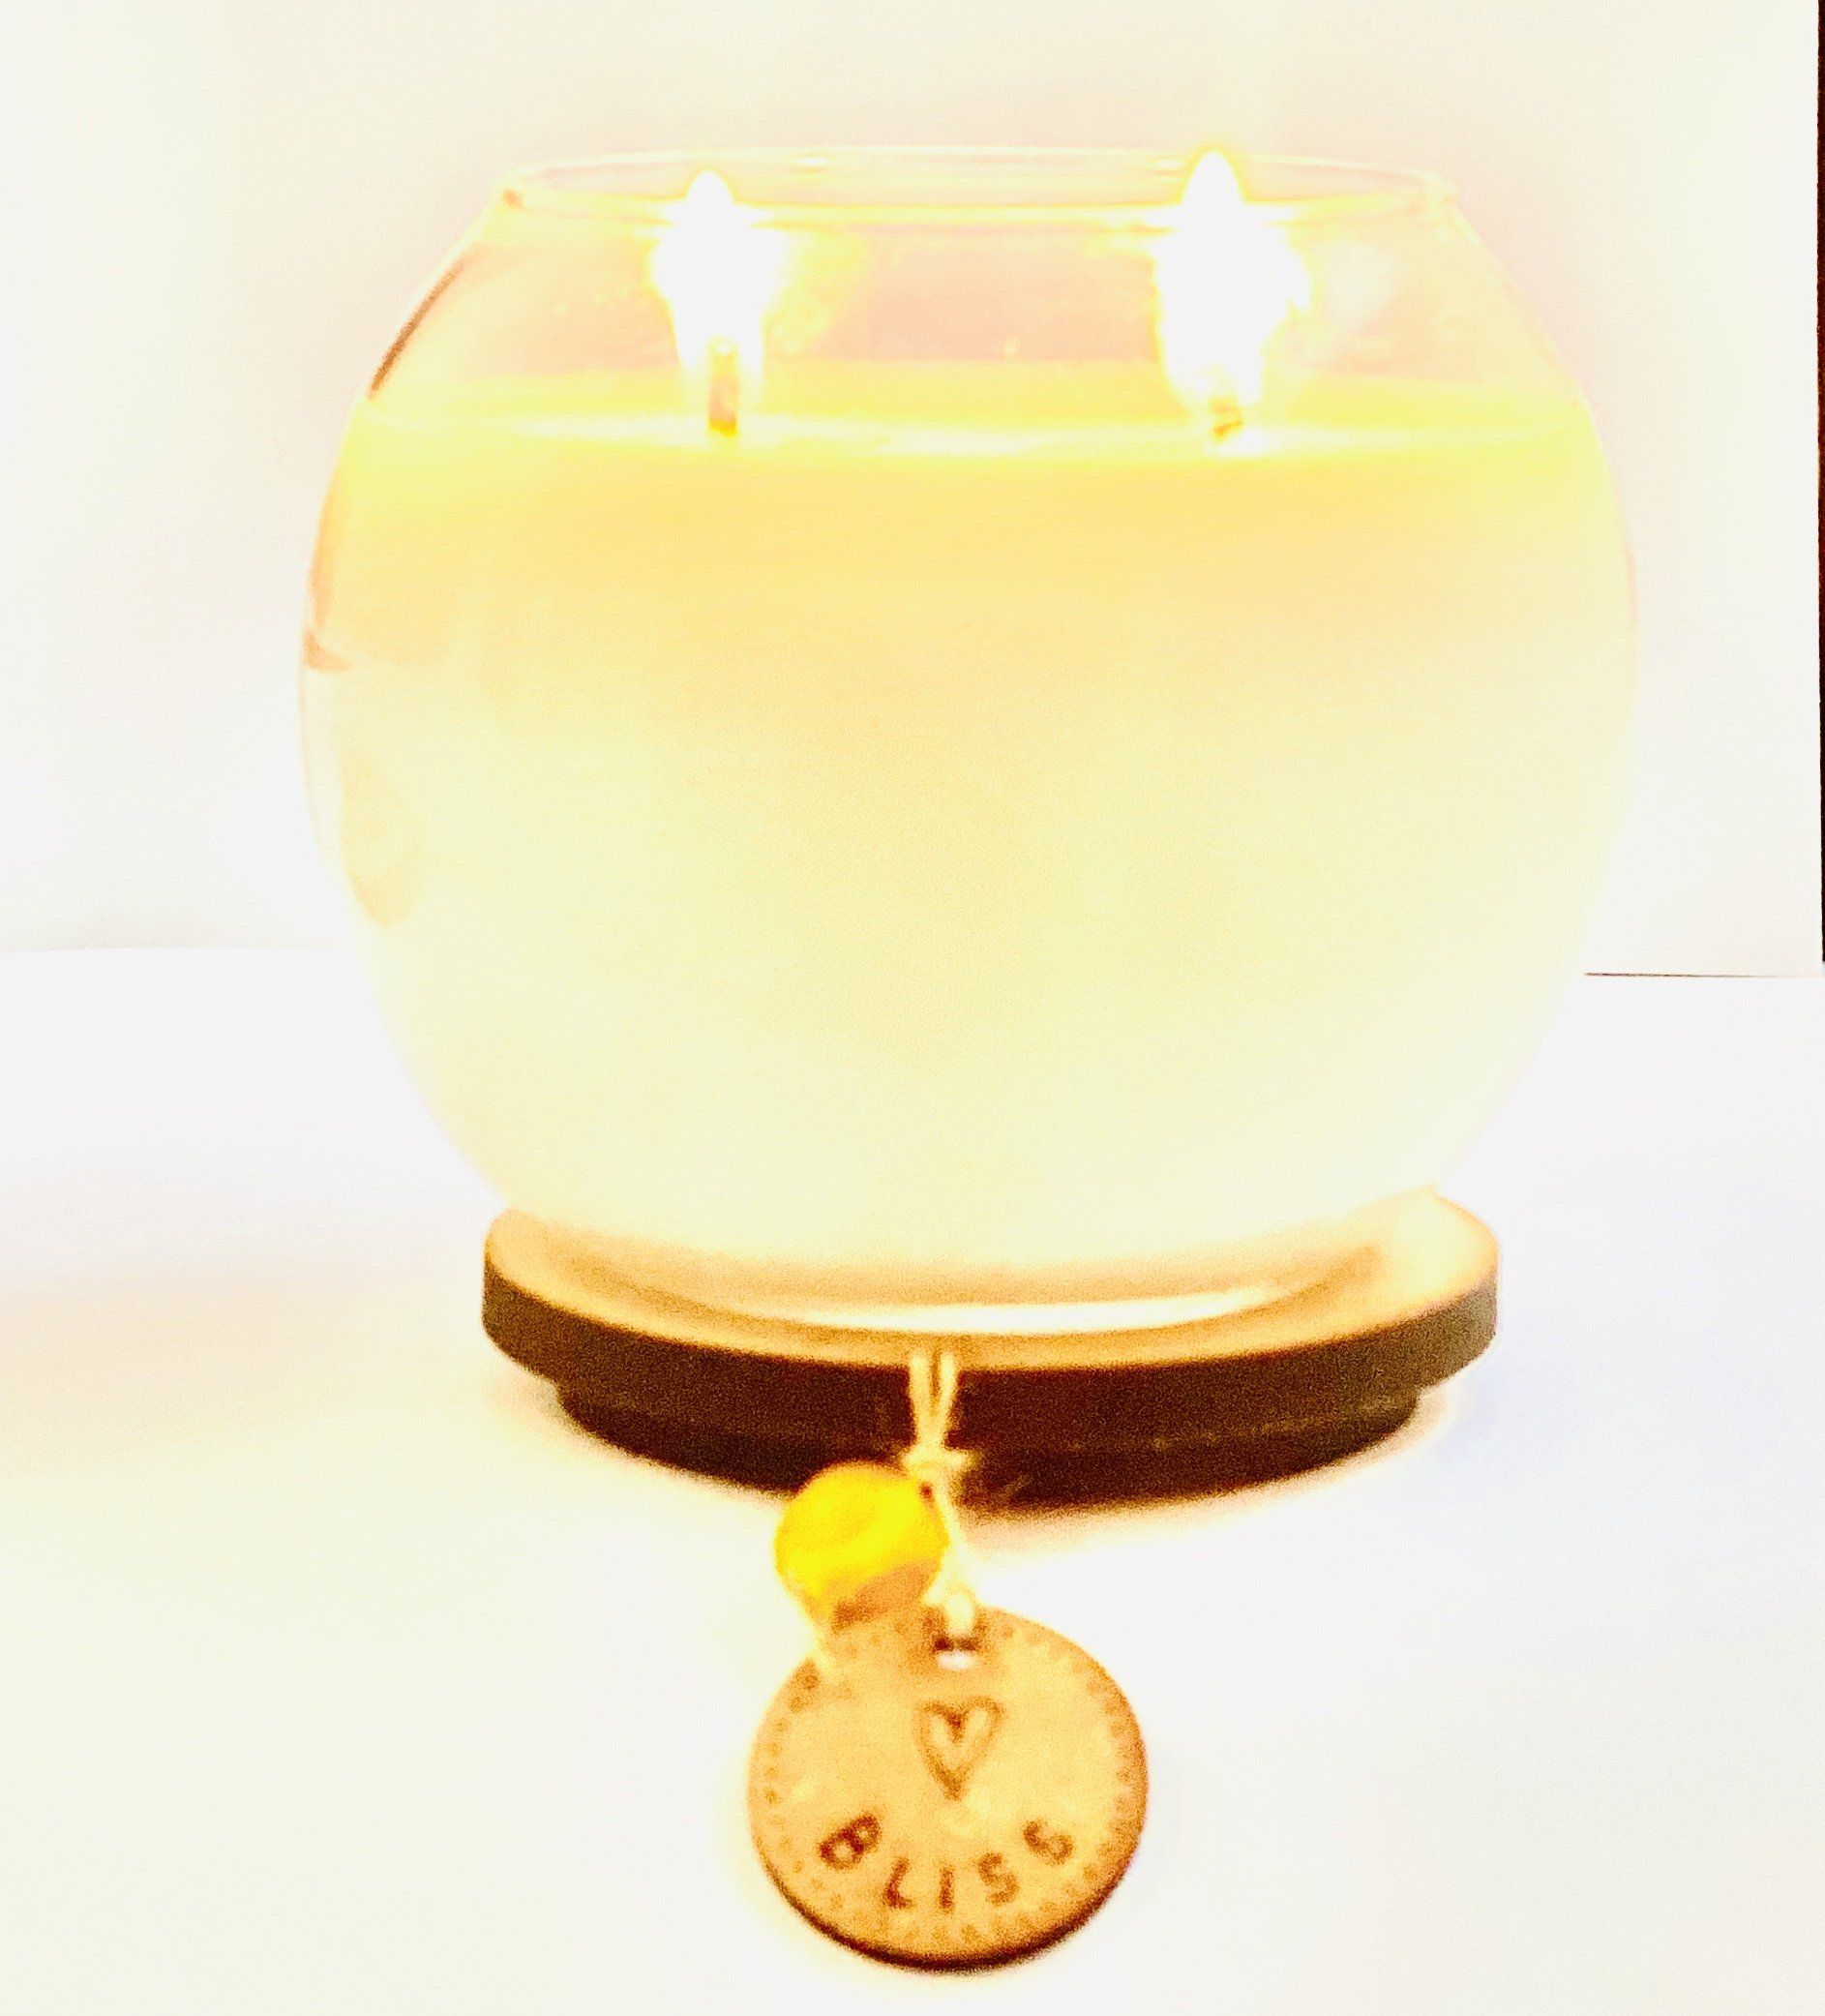 Vegan Soy Wax Candle with Lemongrass and Basil Essential Oils. Double Wick Bowl Kind Shop 3